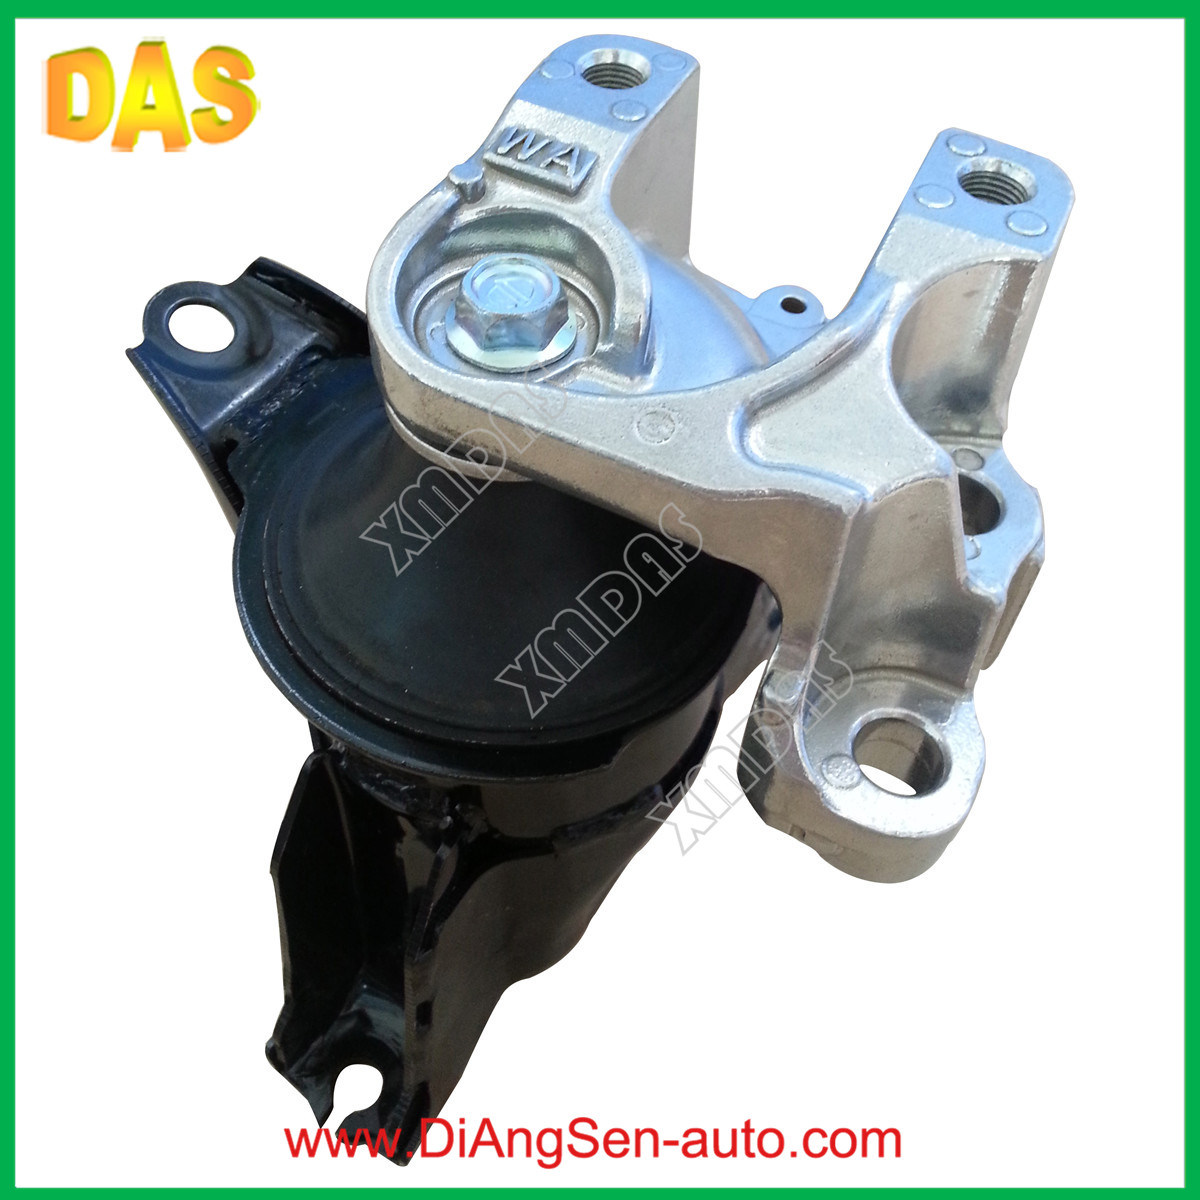 China Auto Car Parts Rubber Engine Motor Mounting For Honda Crv 2001 Discount Factory Oem And 50820 T0t H01